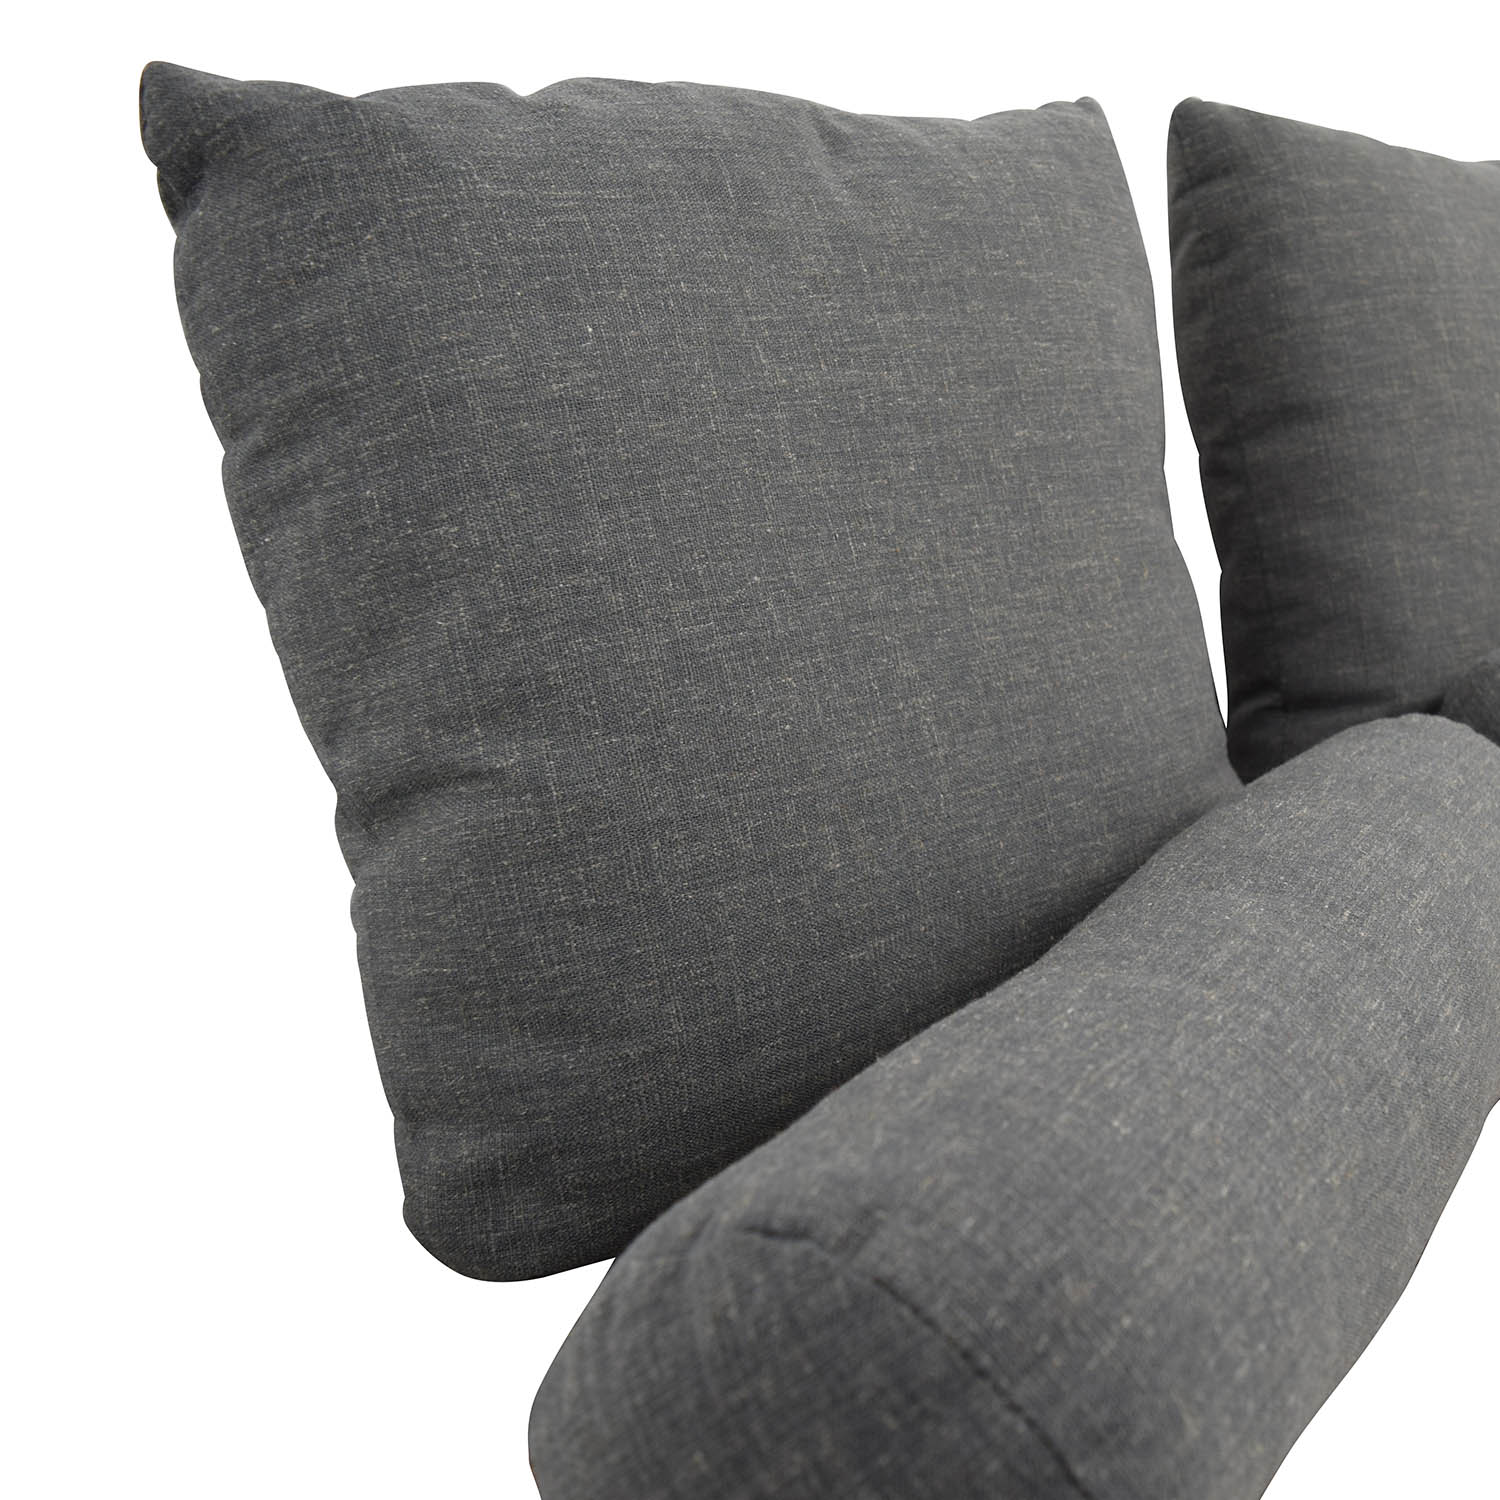 Grey Square Toss Pillow and Neck Rolls Decor